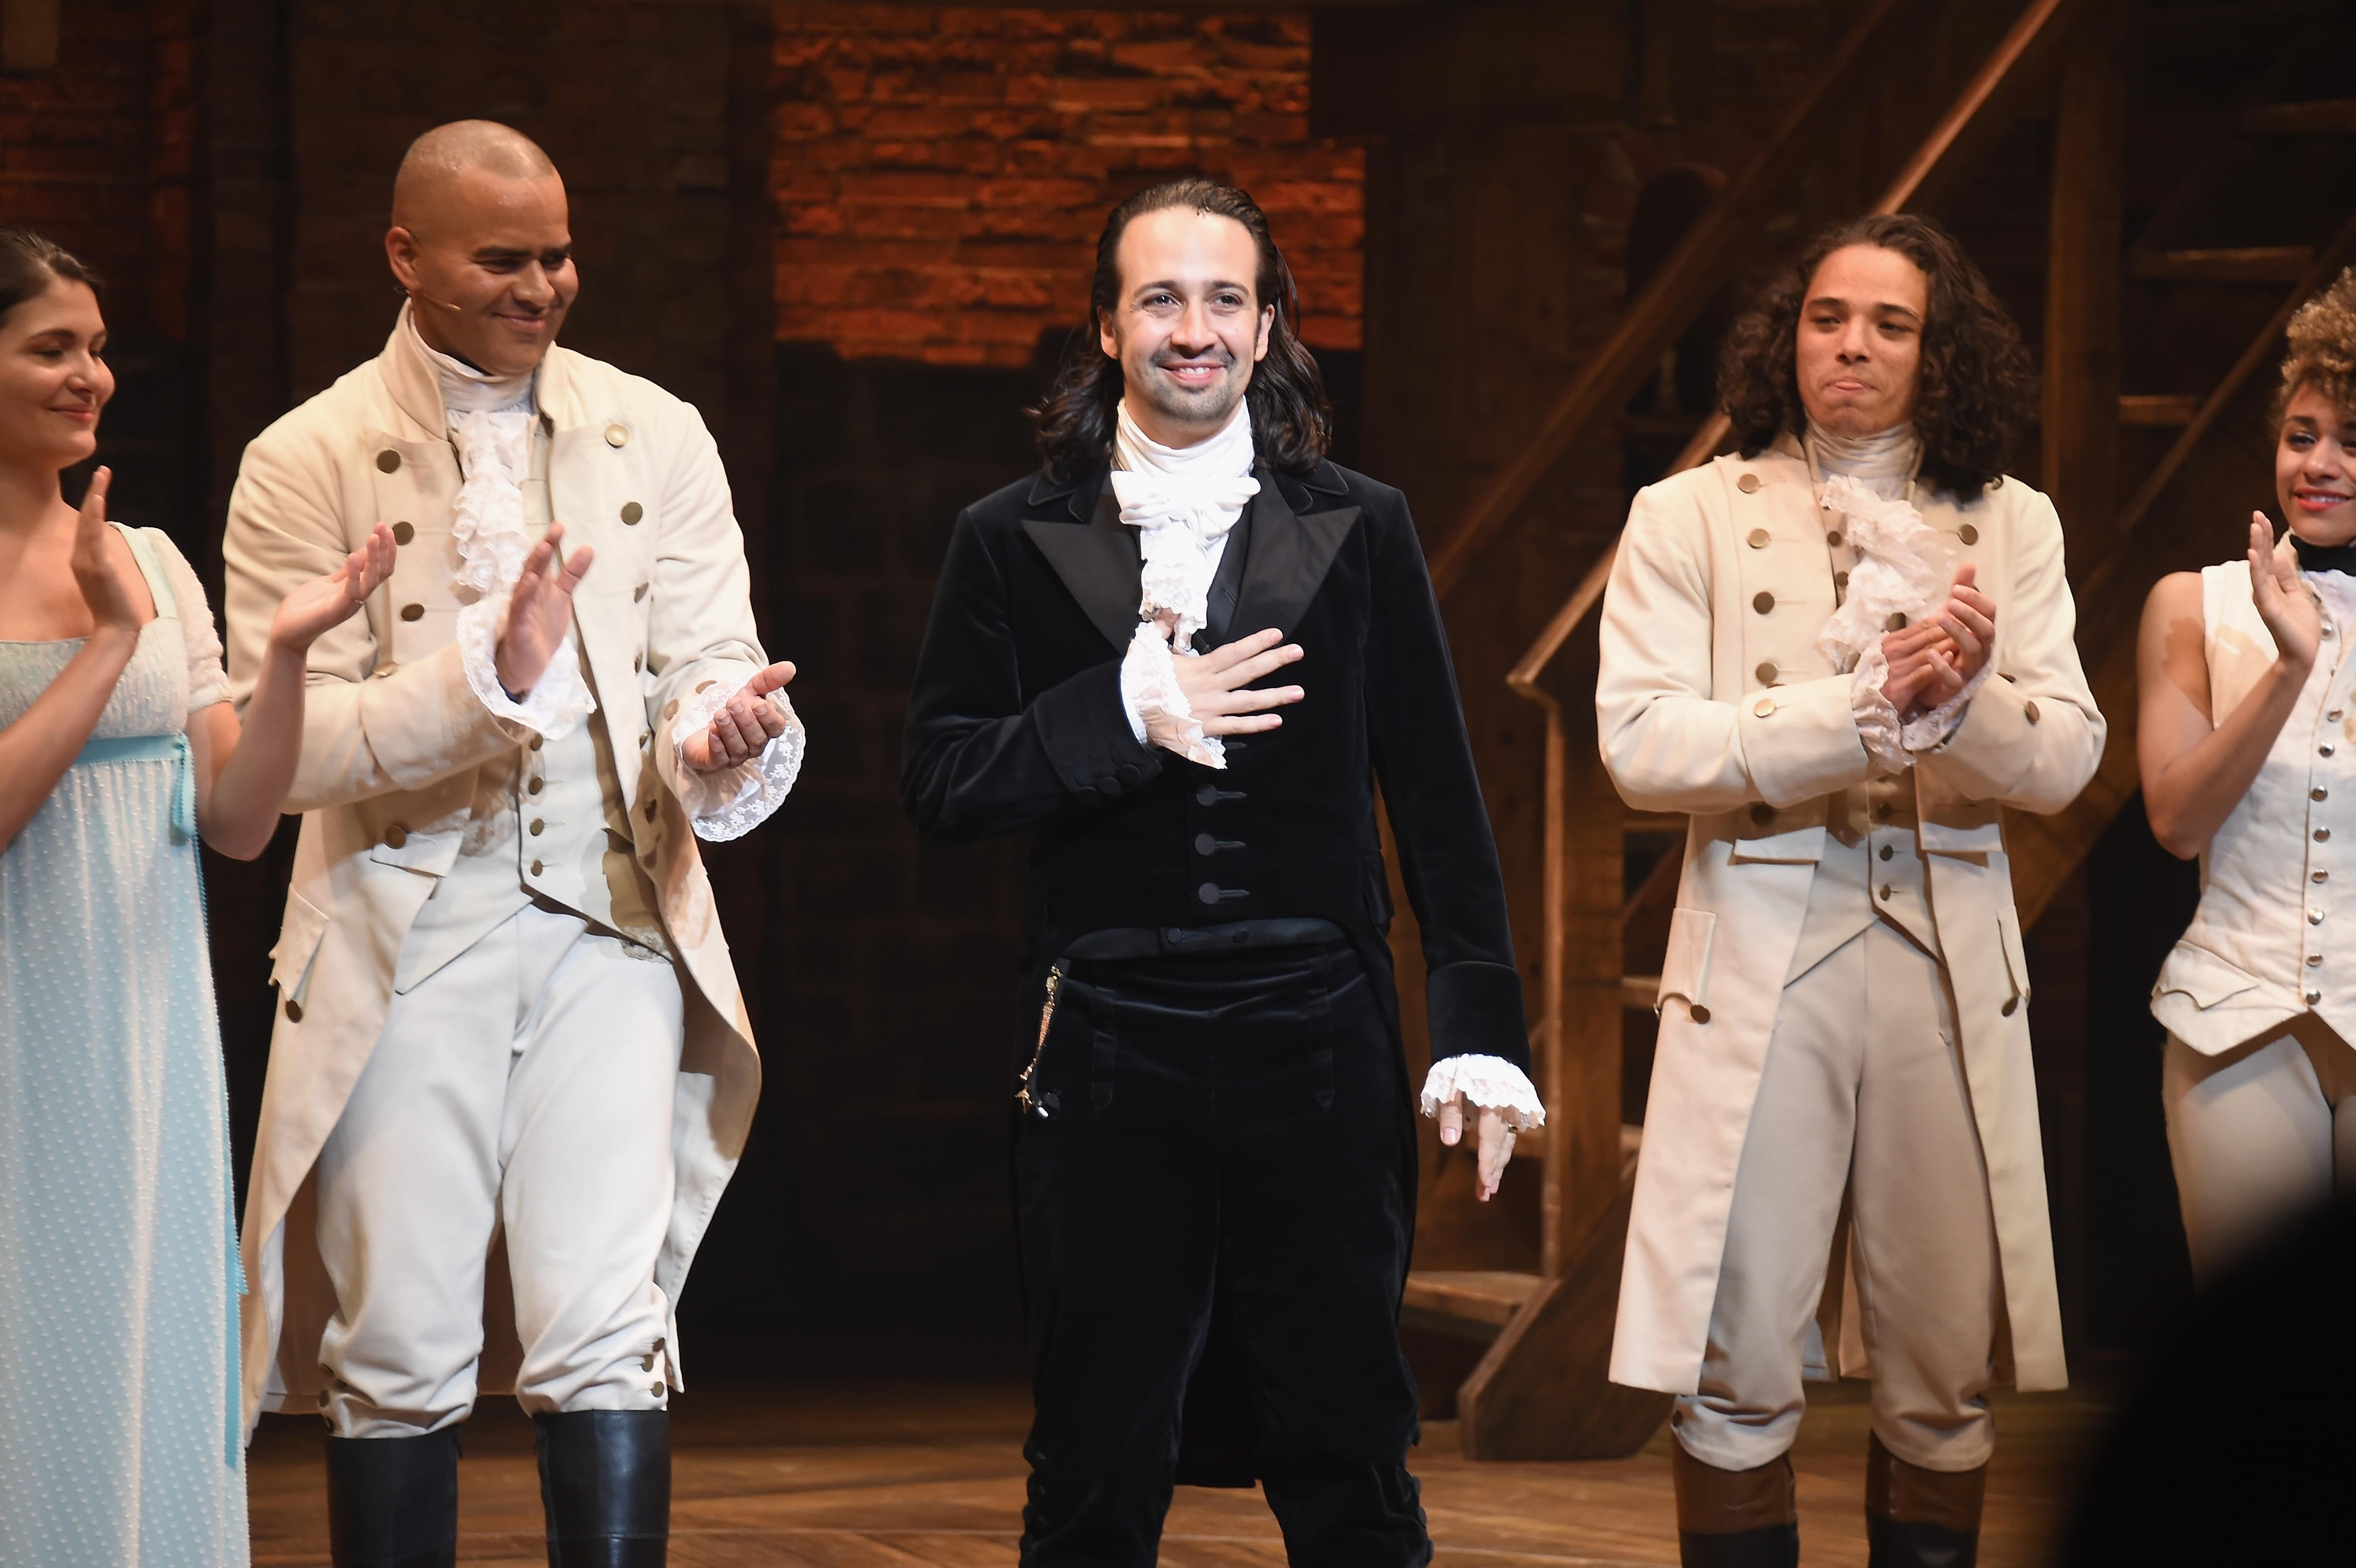 Hamilton Comes To Indianapolis This Month And You Could Get $10 Tickets